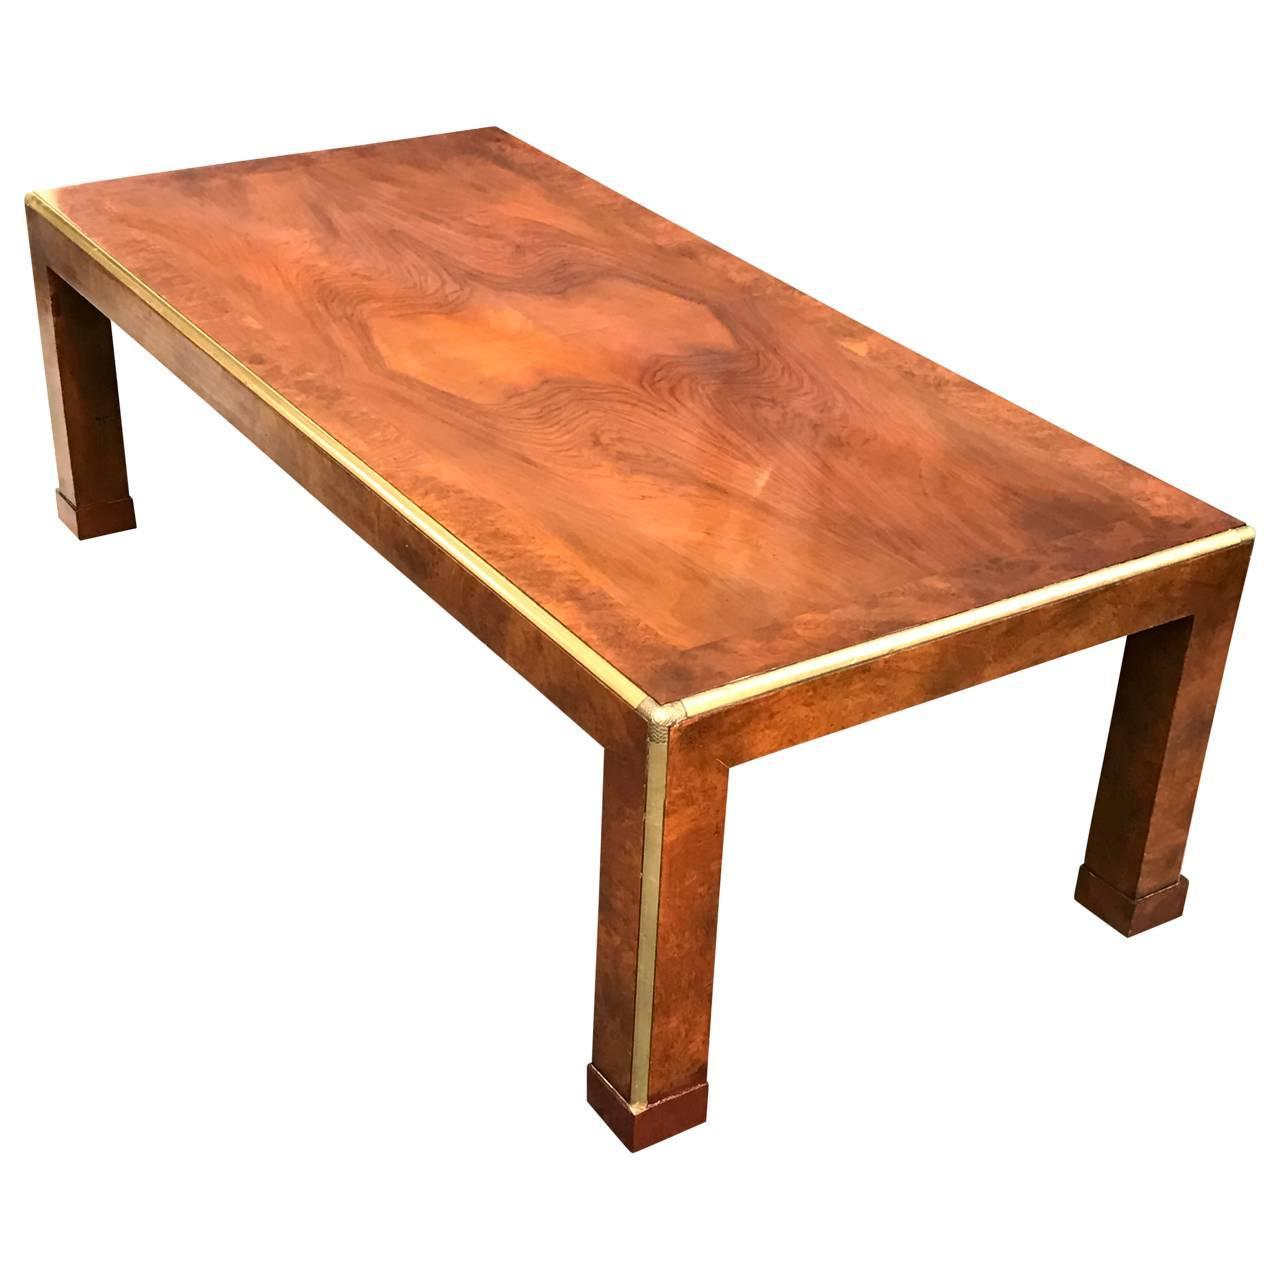 Rectangular Coffee Table By Baker At 1stdibs